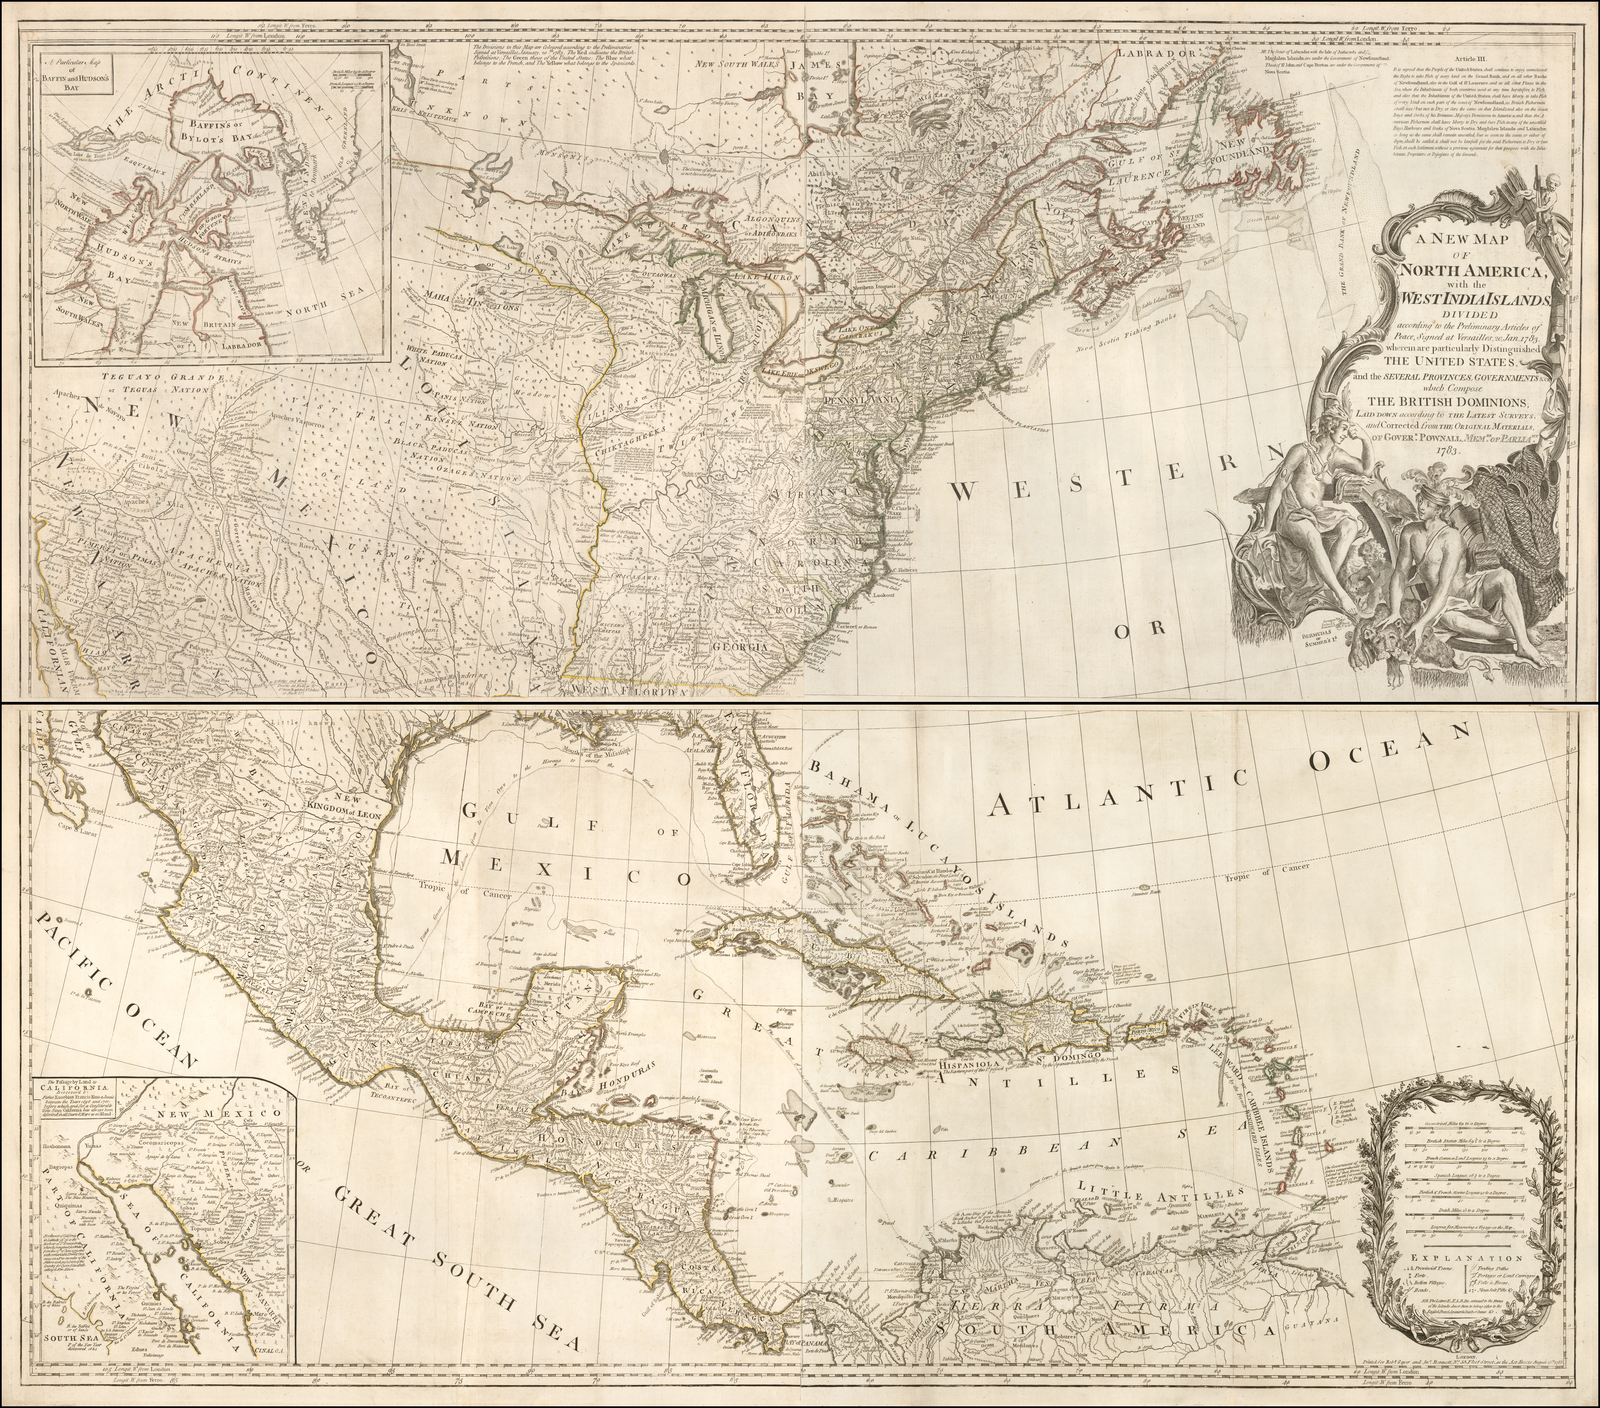 A New Map of North America, with the West India Islands ... Image United States Map on united states map 1776, united states map grade 1, united states map 1770, united states map bodies of water, united states 1853 map, united states map 1700, united states map 1500, united states map 1790, united states map during civil war, united states map 1803, united states territories world map, united states map 1823, united states map ohio, united states territorial growth map, united states map 1800, united states map southeast usa, united states map 1801, united states map 1781, united states map 1865,